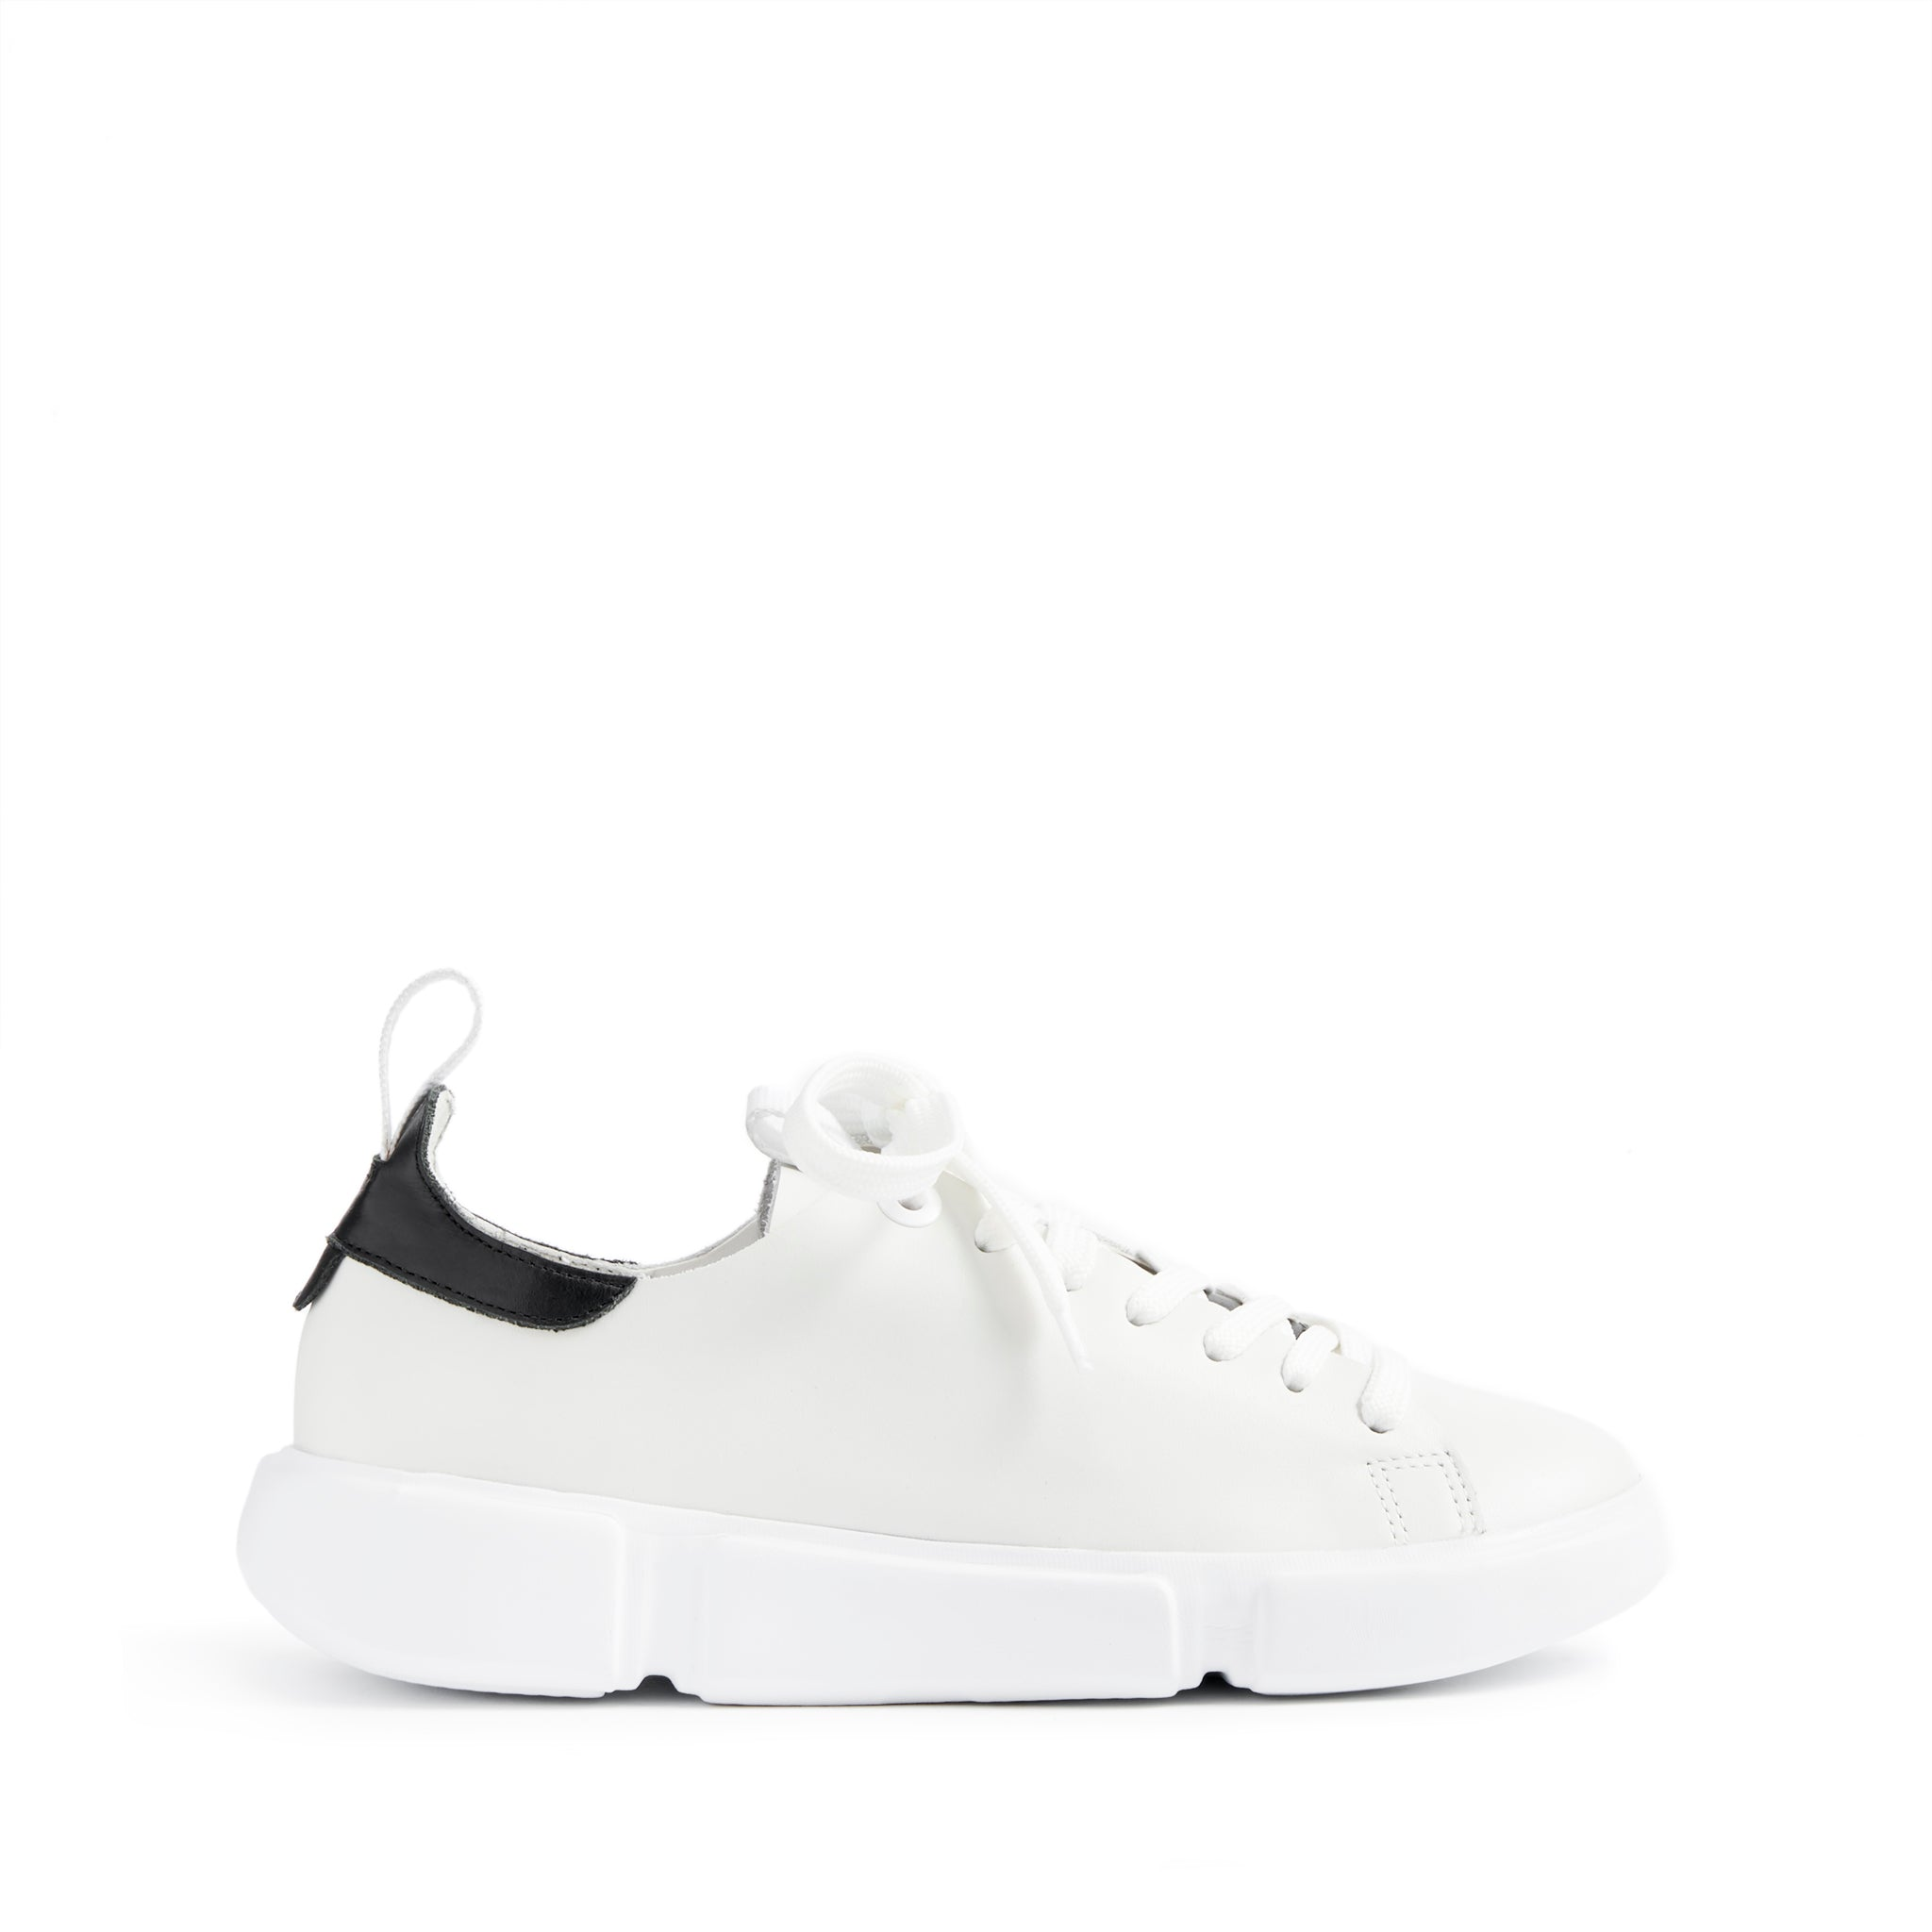 Cailey Sneakers White Leather